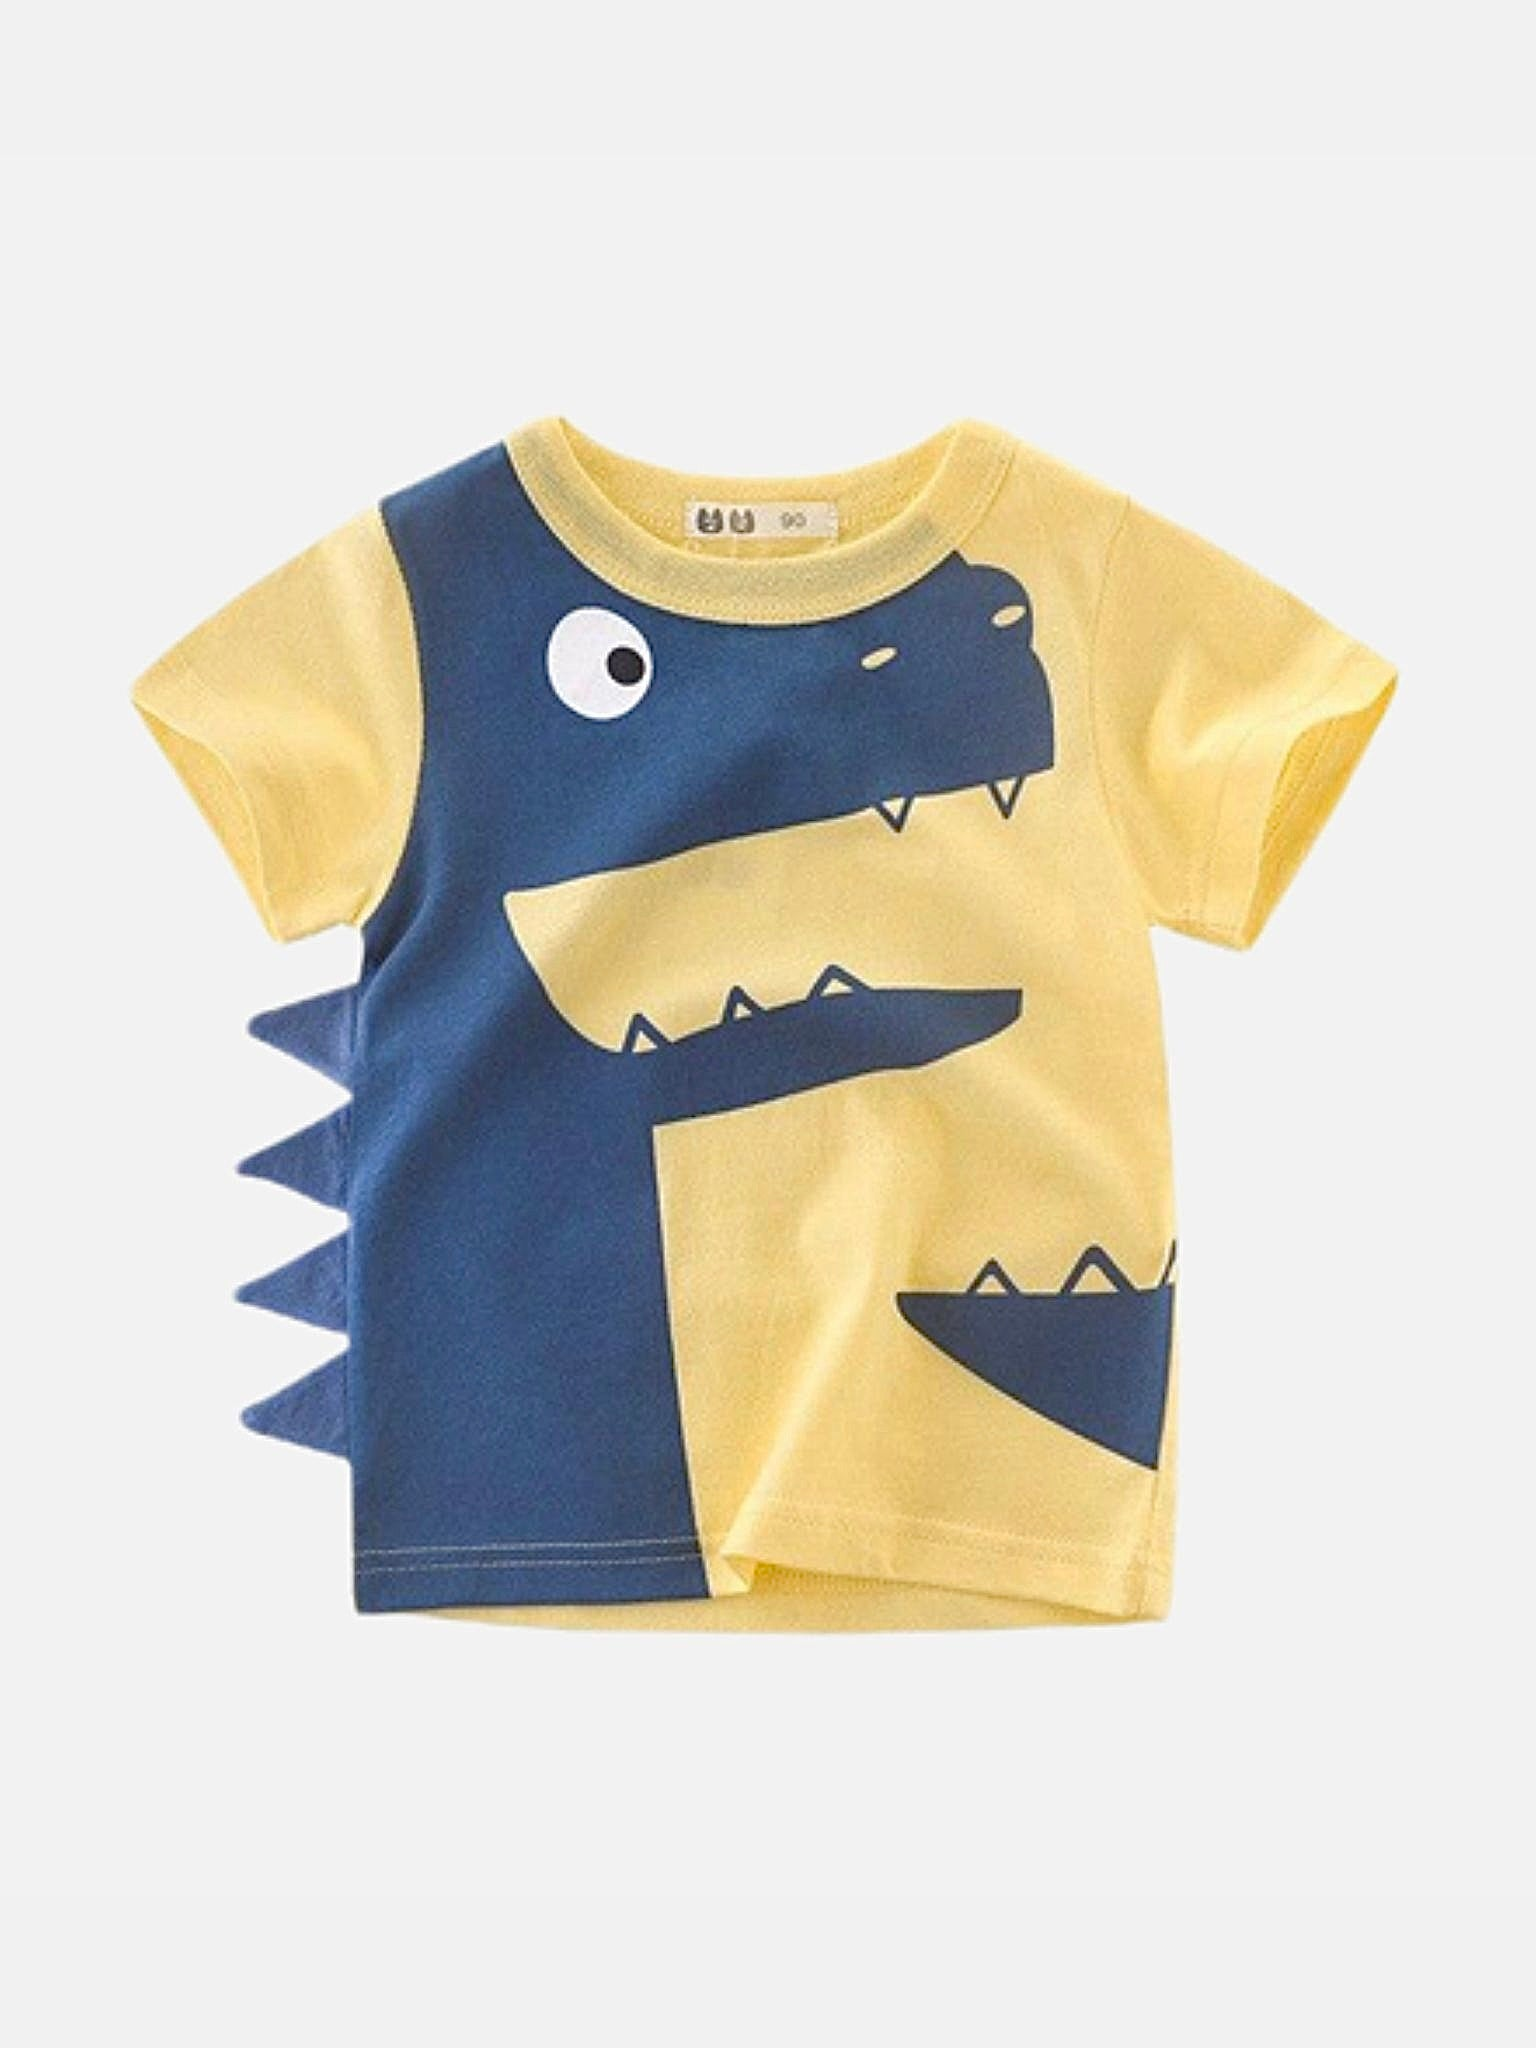 Toddler Crewneck T-Shirt      Dinosaur cartoon yellow short sleeve infant tshirt tee Trend